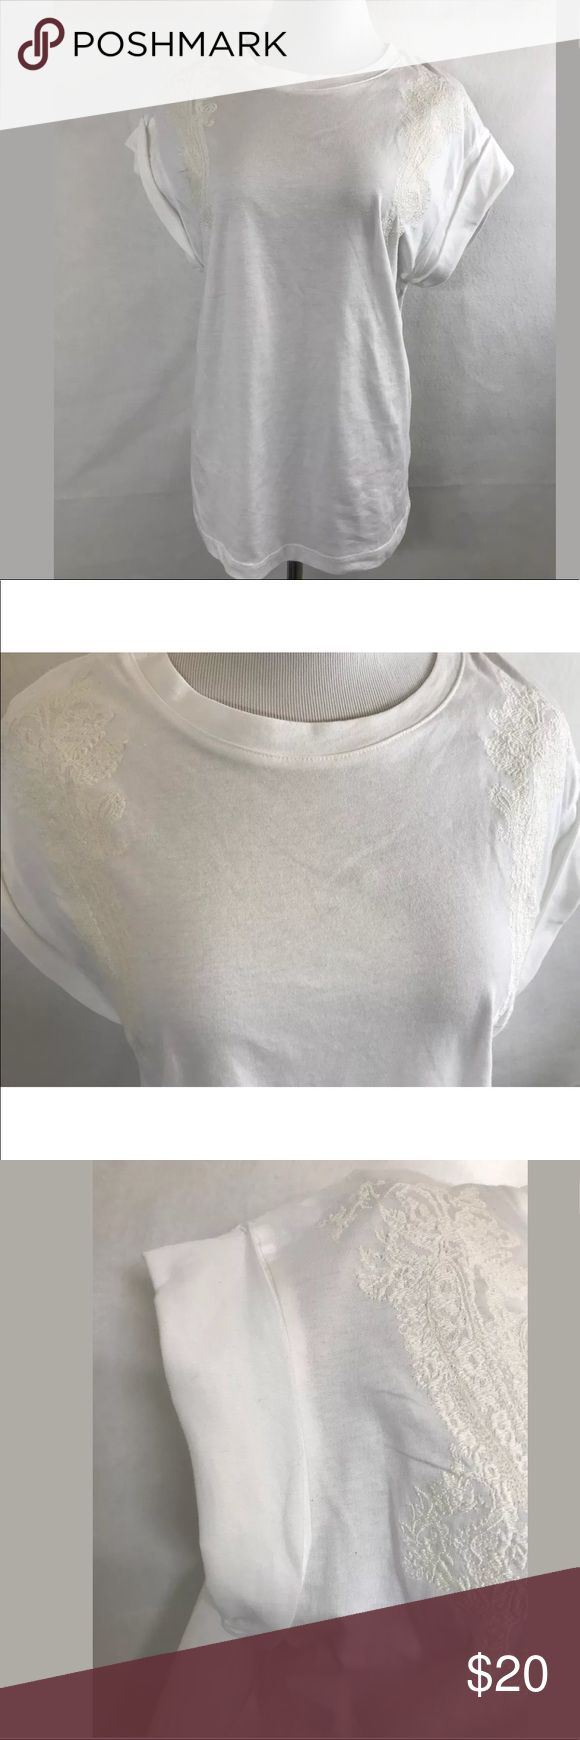 """H&M White Short Sleeves Boho Embroidery Top H&M White 100% Cotton Short Sleeves Top Ivory Boho Embroidery Size M Medium. Folded sleeves.  Shell: 100% Cotton Embroidery: 100% Polyester  Length (Shoulder to Hem) - 23.5"""" Armpit to Armpit - 16.5"""" **All measurements are approximate** H&M Tops Blouses"""